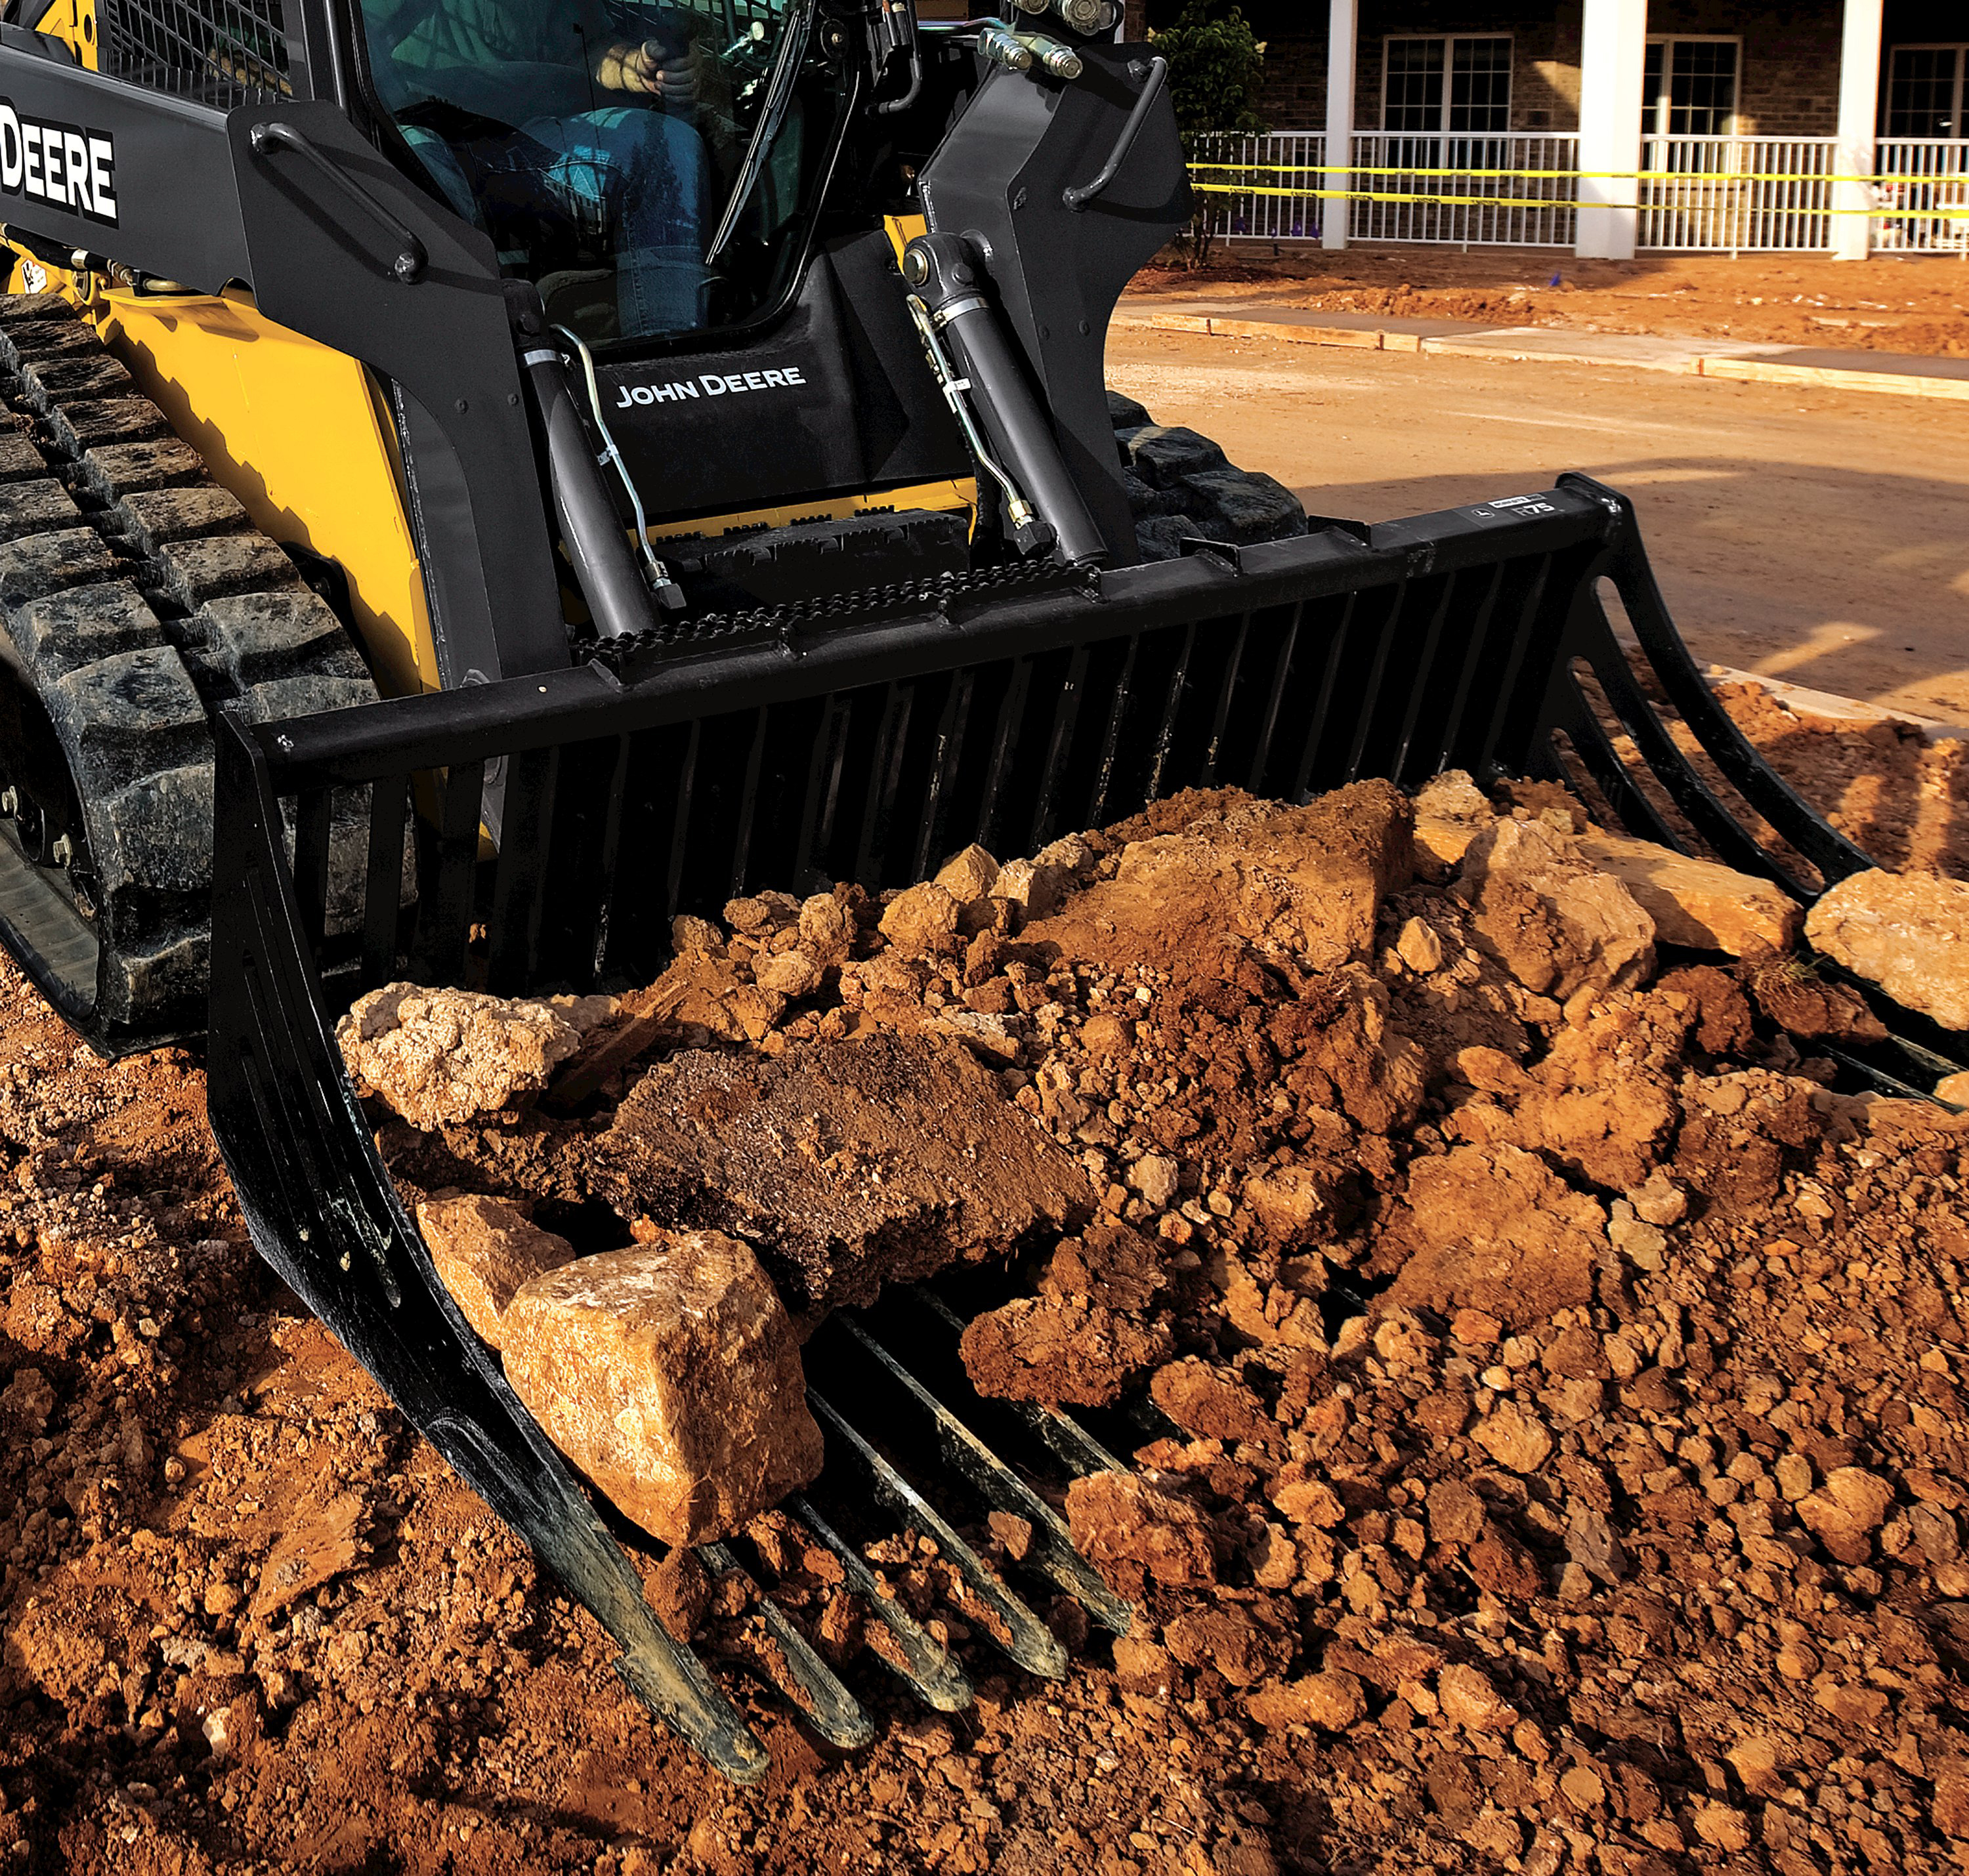 Worksite Pro Attachments from John Deere